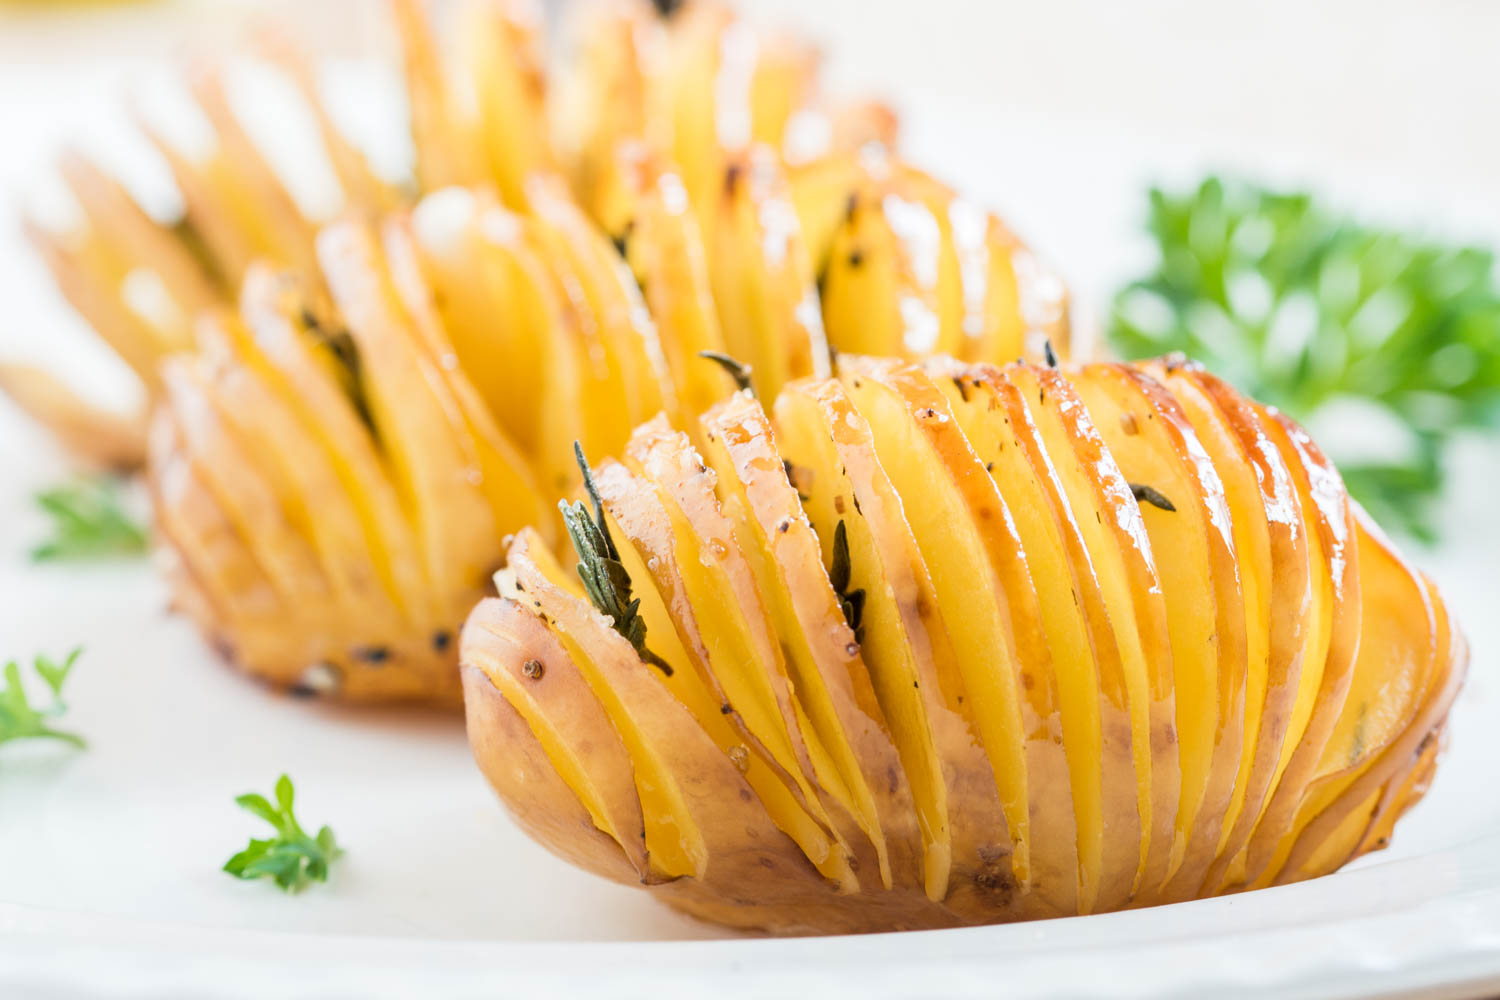 Picture of Garlic - Thyme Hasselback Potatoes